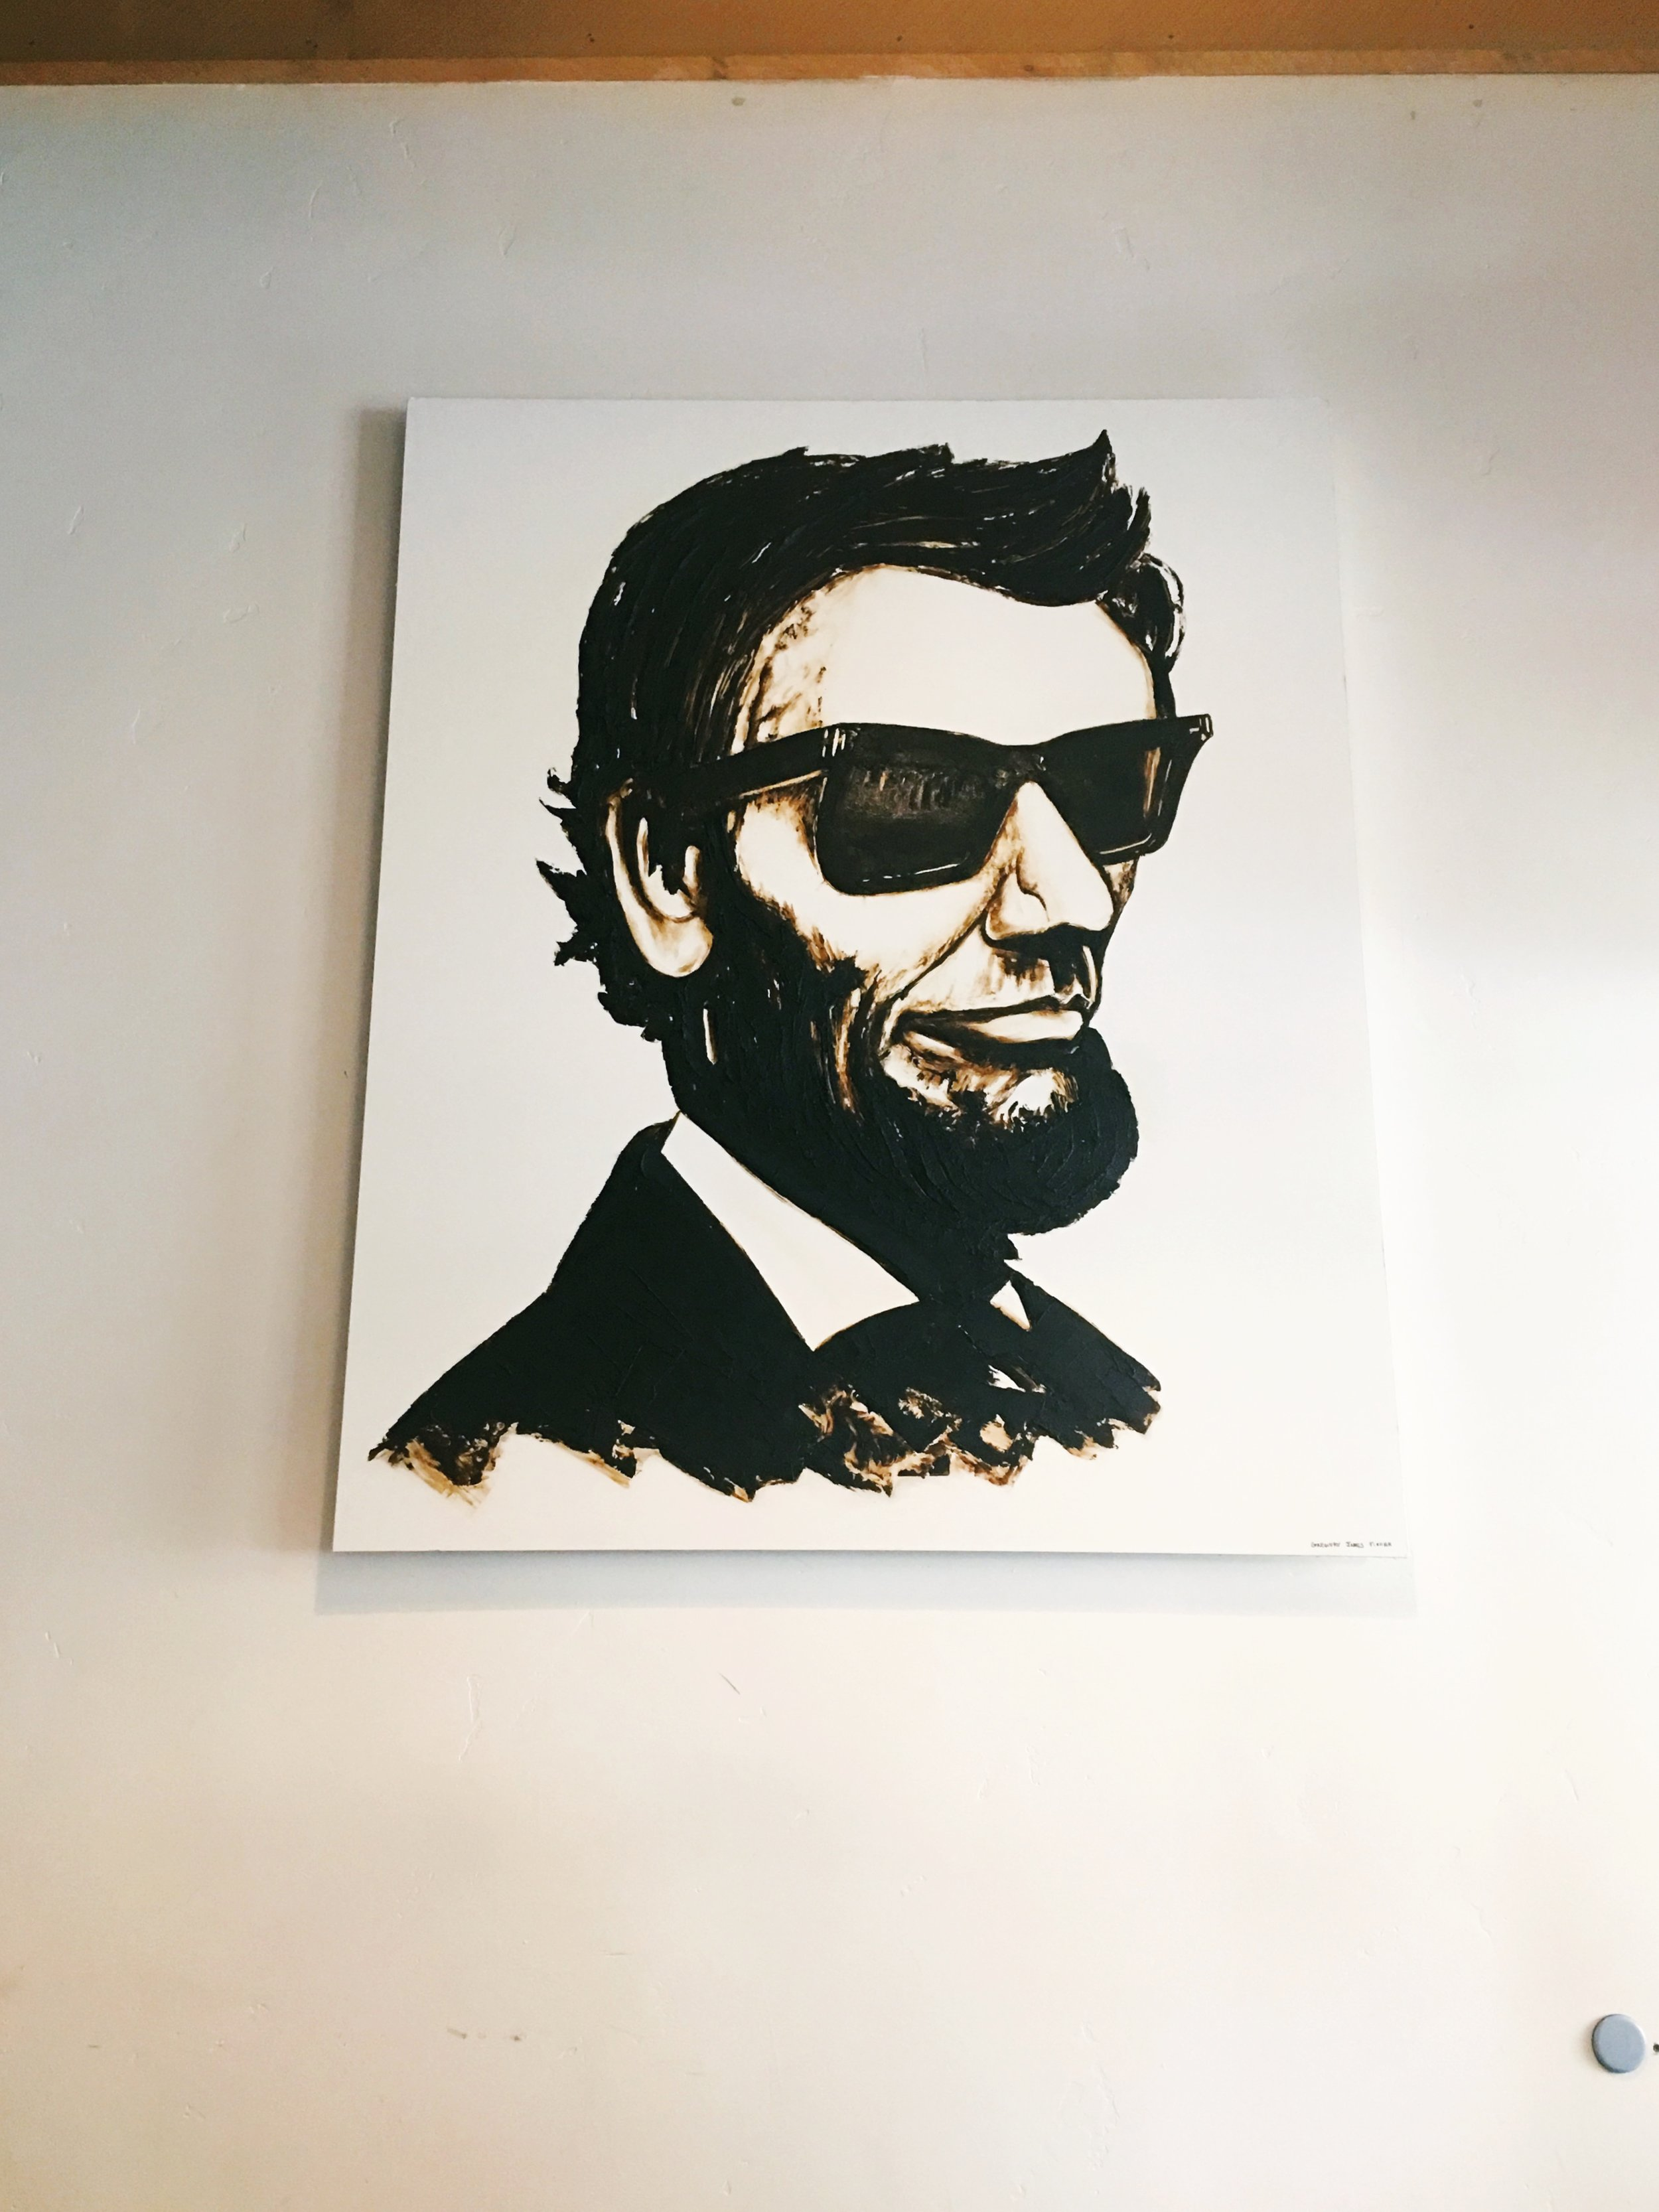 Four Score and seven years/ President Abraham Lincoln drawing wearing sunglasses